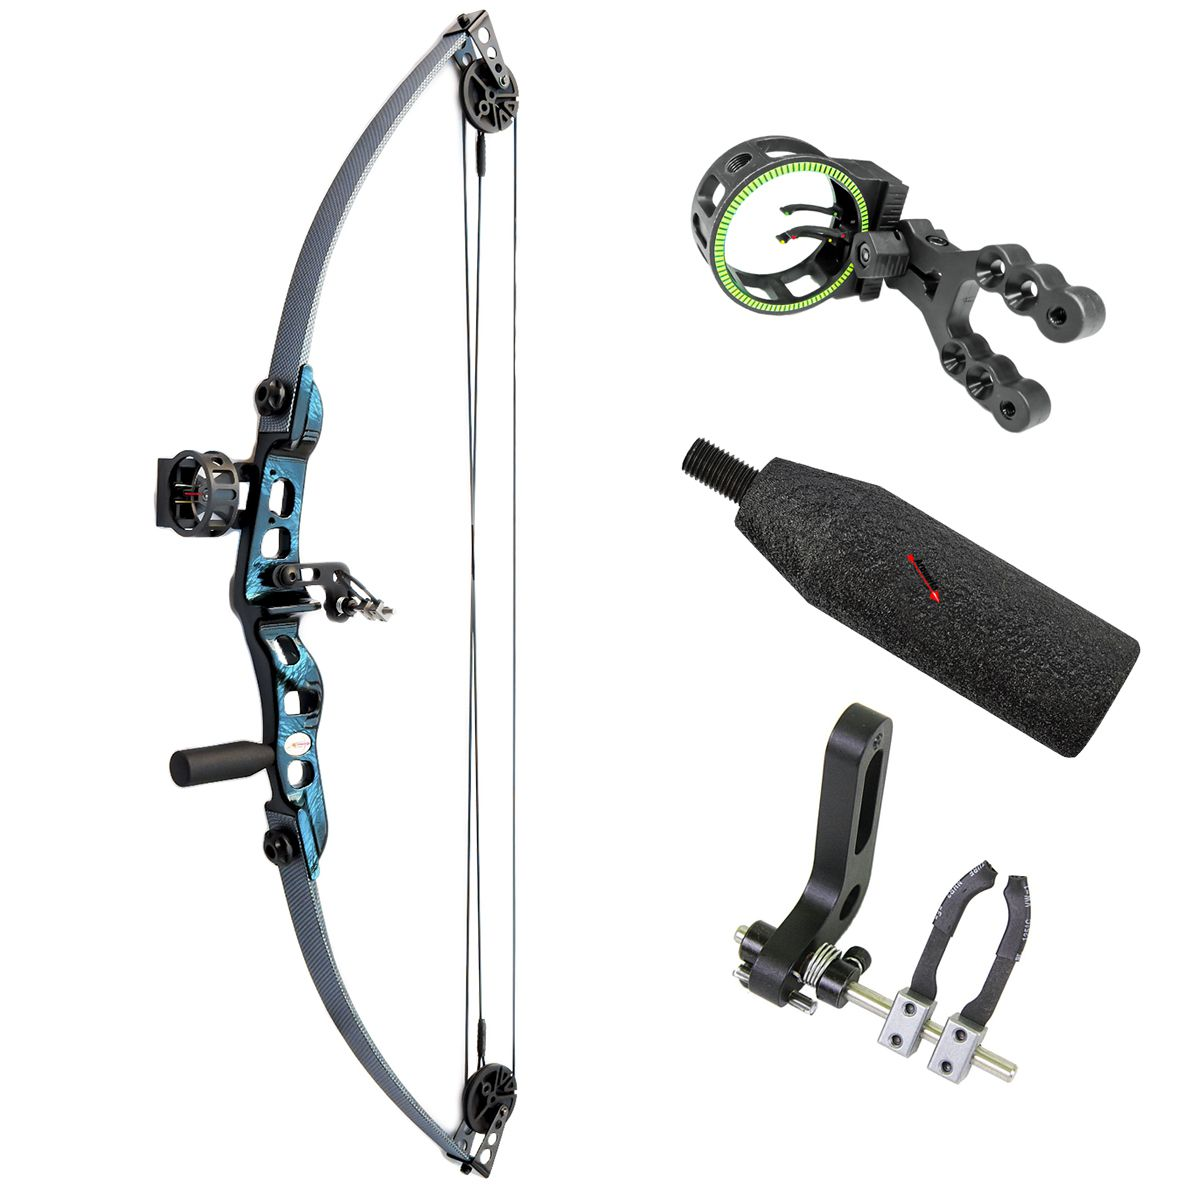 Arco e flecha Catfish Vixion kit plus Composto + Mira MK-Sight + Rest B10002K + Estabilizador EST1